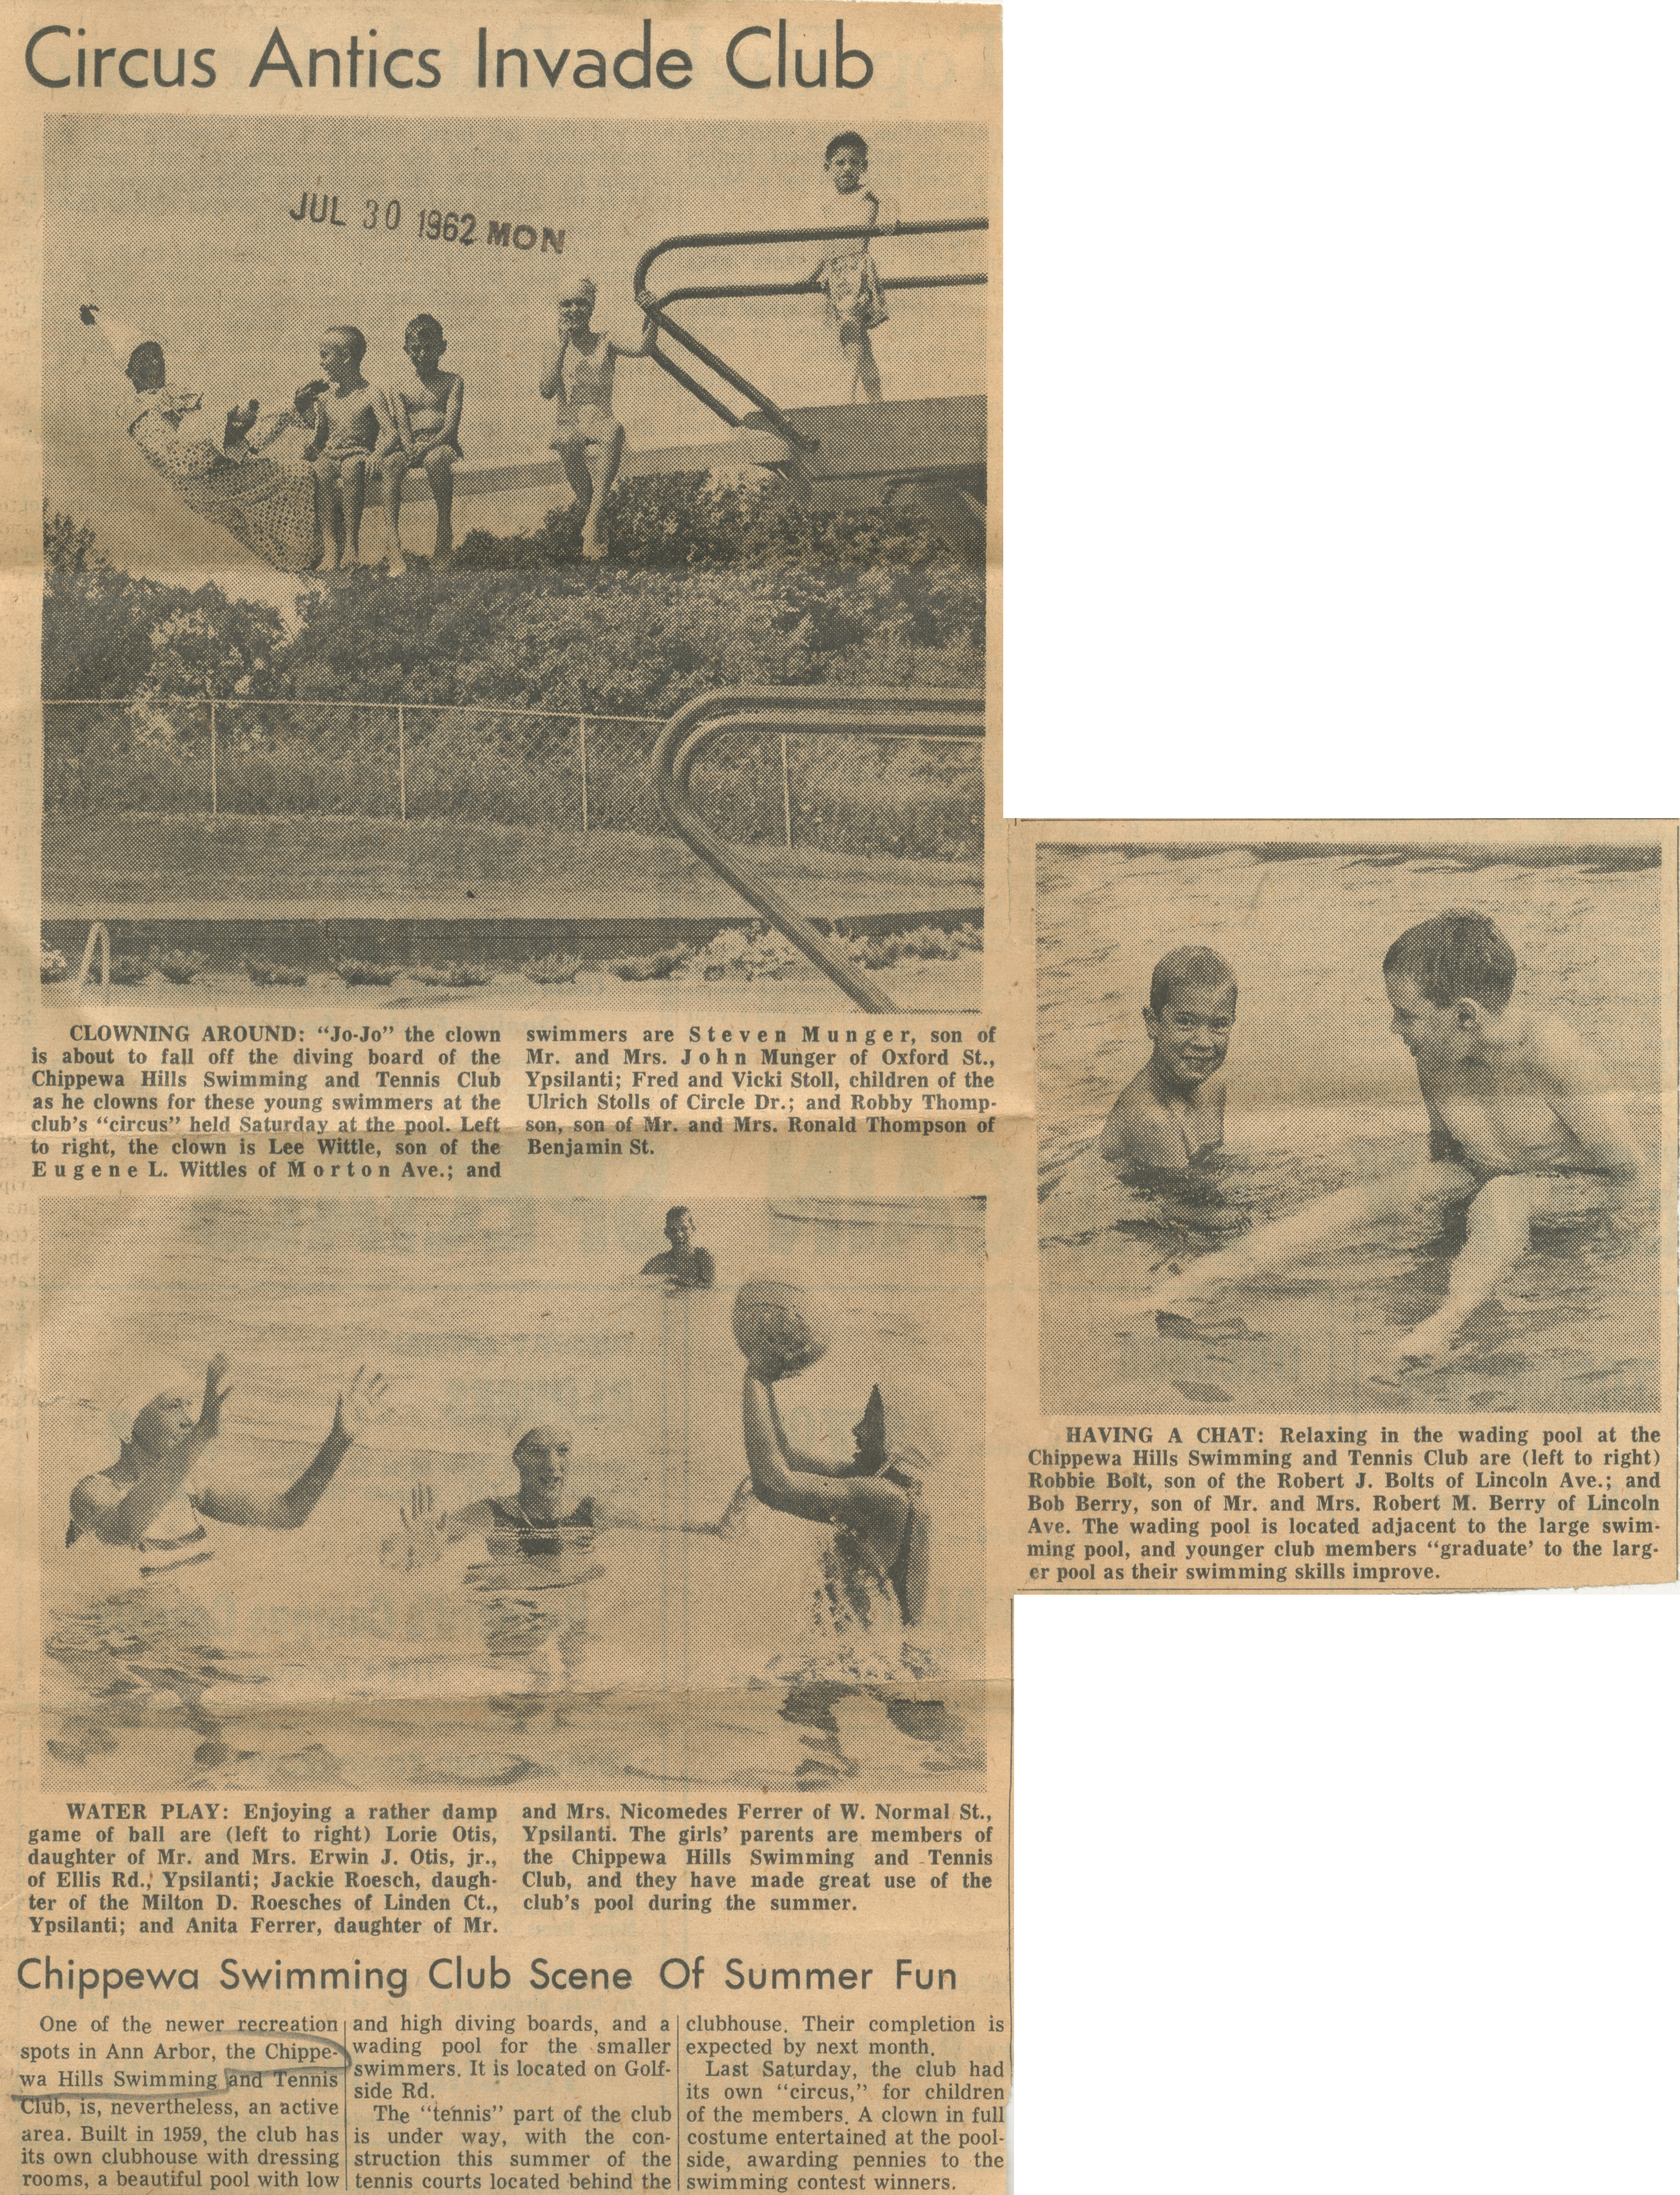 Chippewa Swimming Club Scene Of Summer Fun image